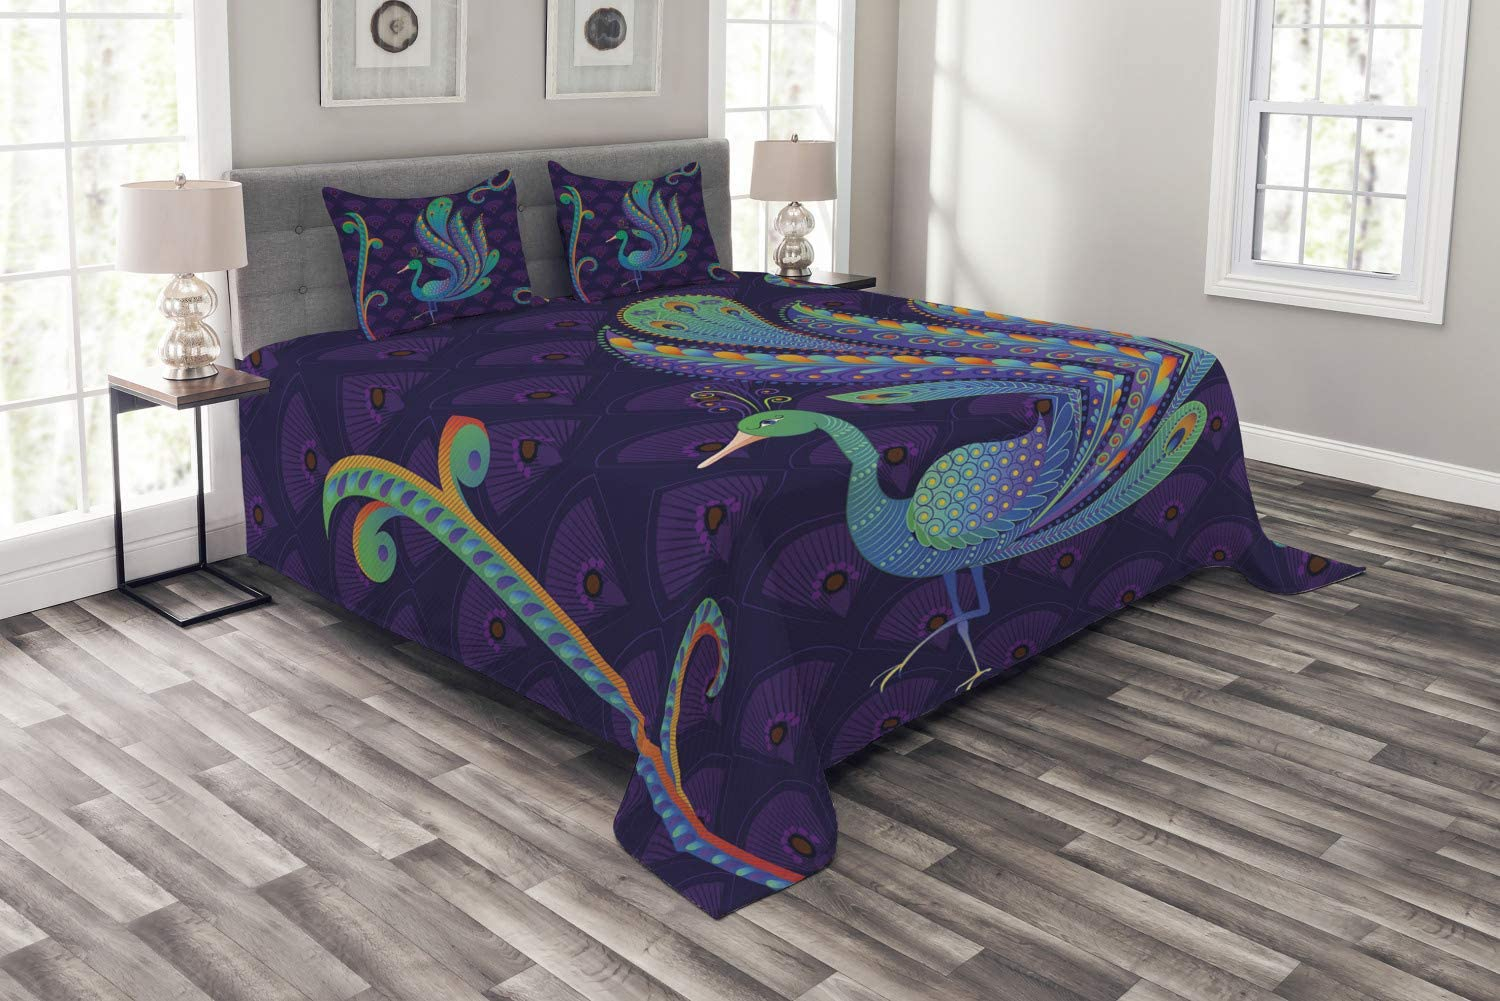 Ambesonne Ethnic Bedspread, Peacock Bird with Oriental Feather Before Image, Decorative Quilted 3 Piece Coverlet Set with 2 Pillow Shams, Queen Size, Purple Green